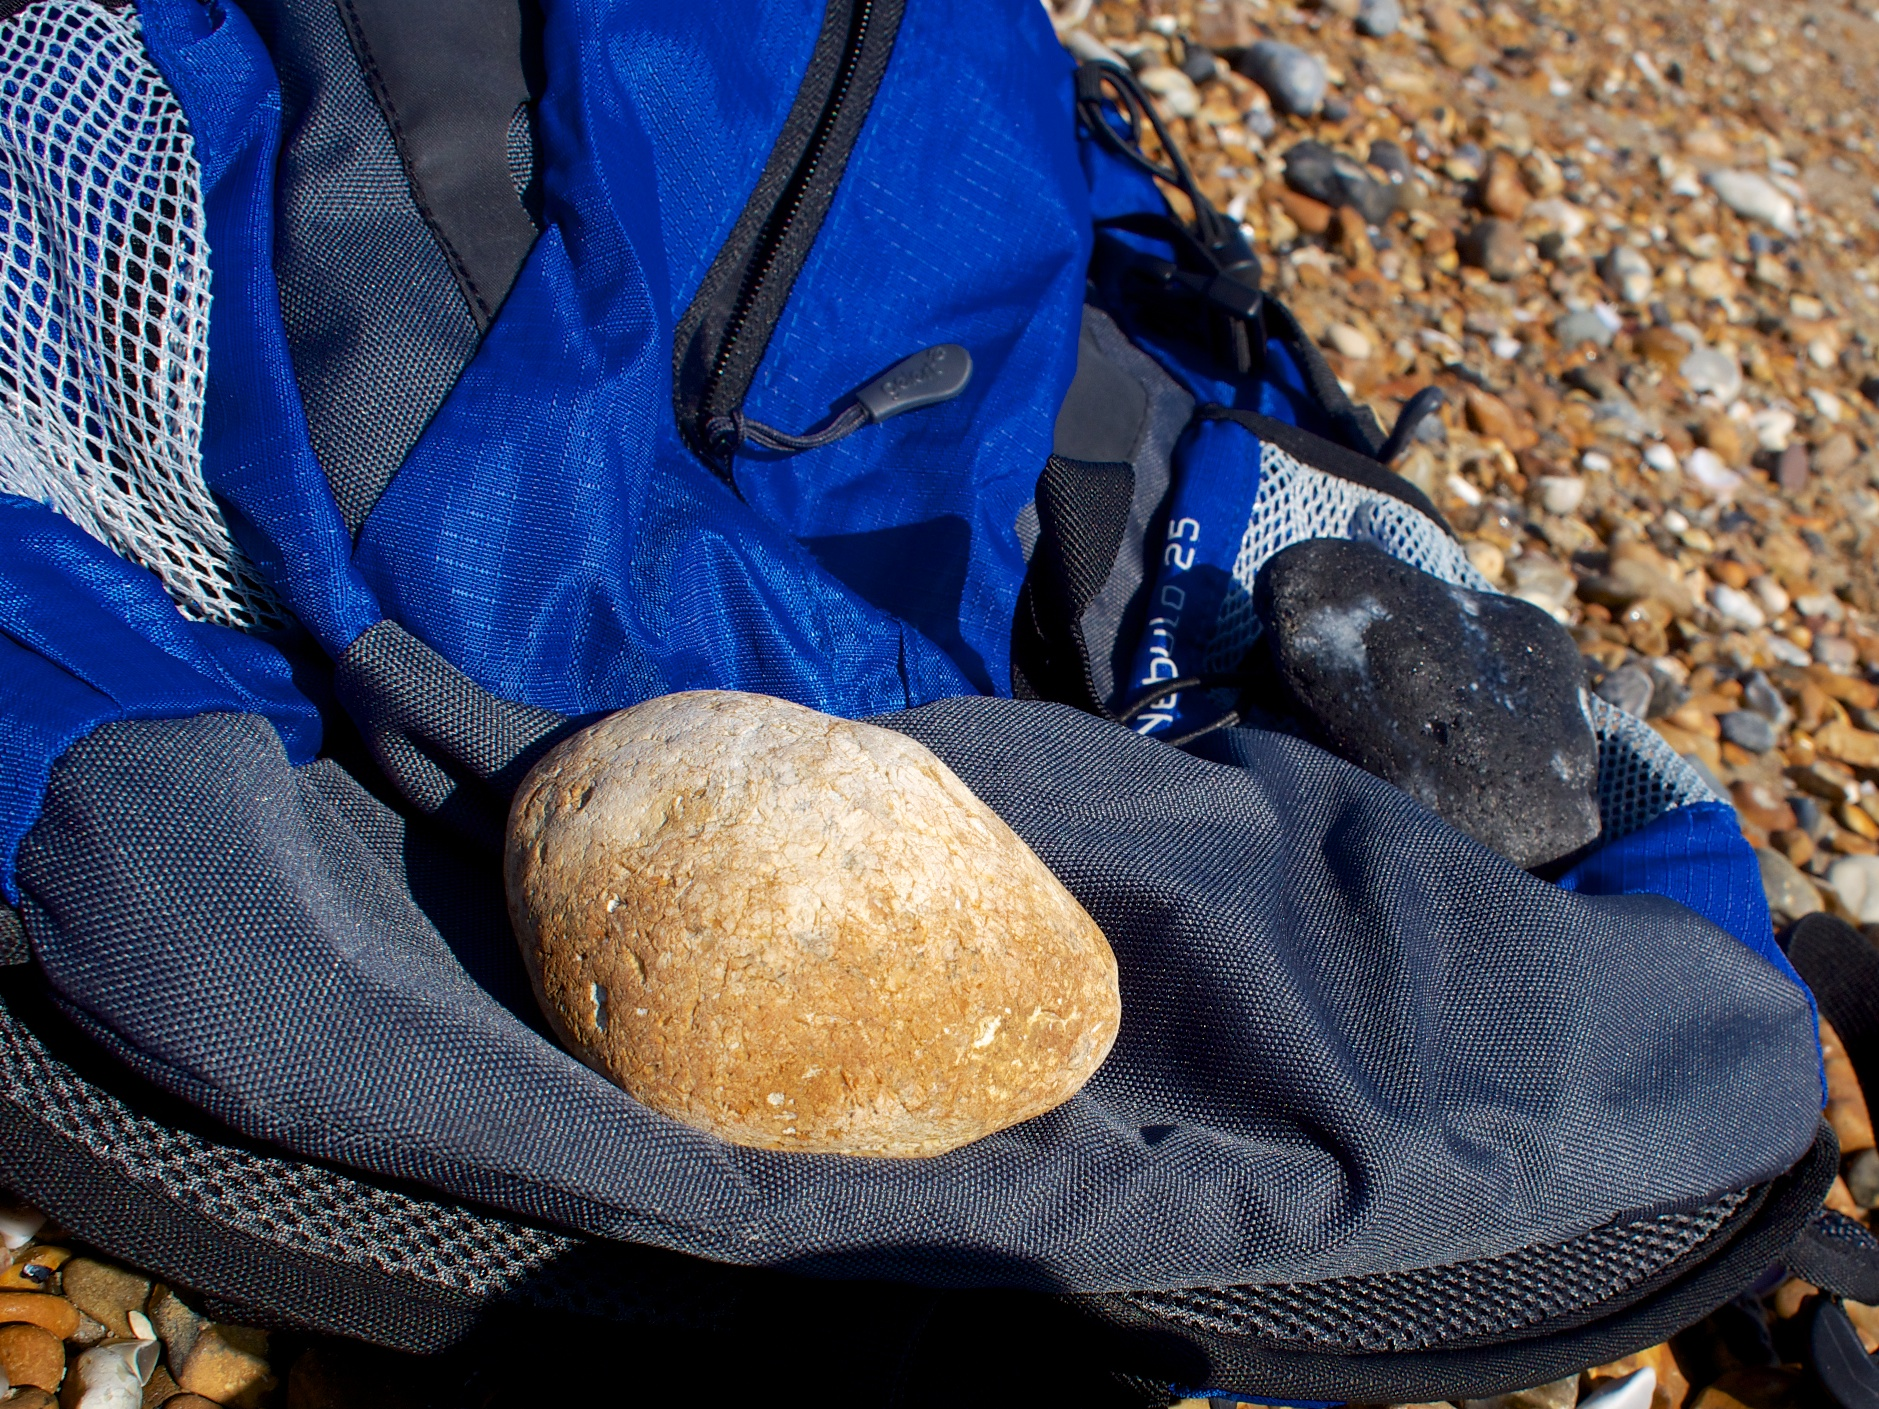 My all-purpose rucksack being used as a stone holder